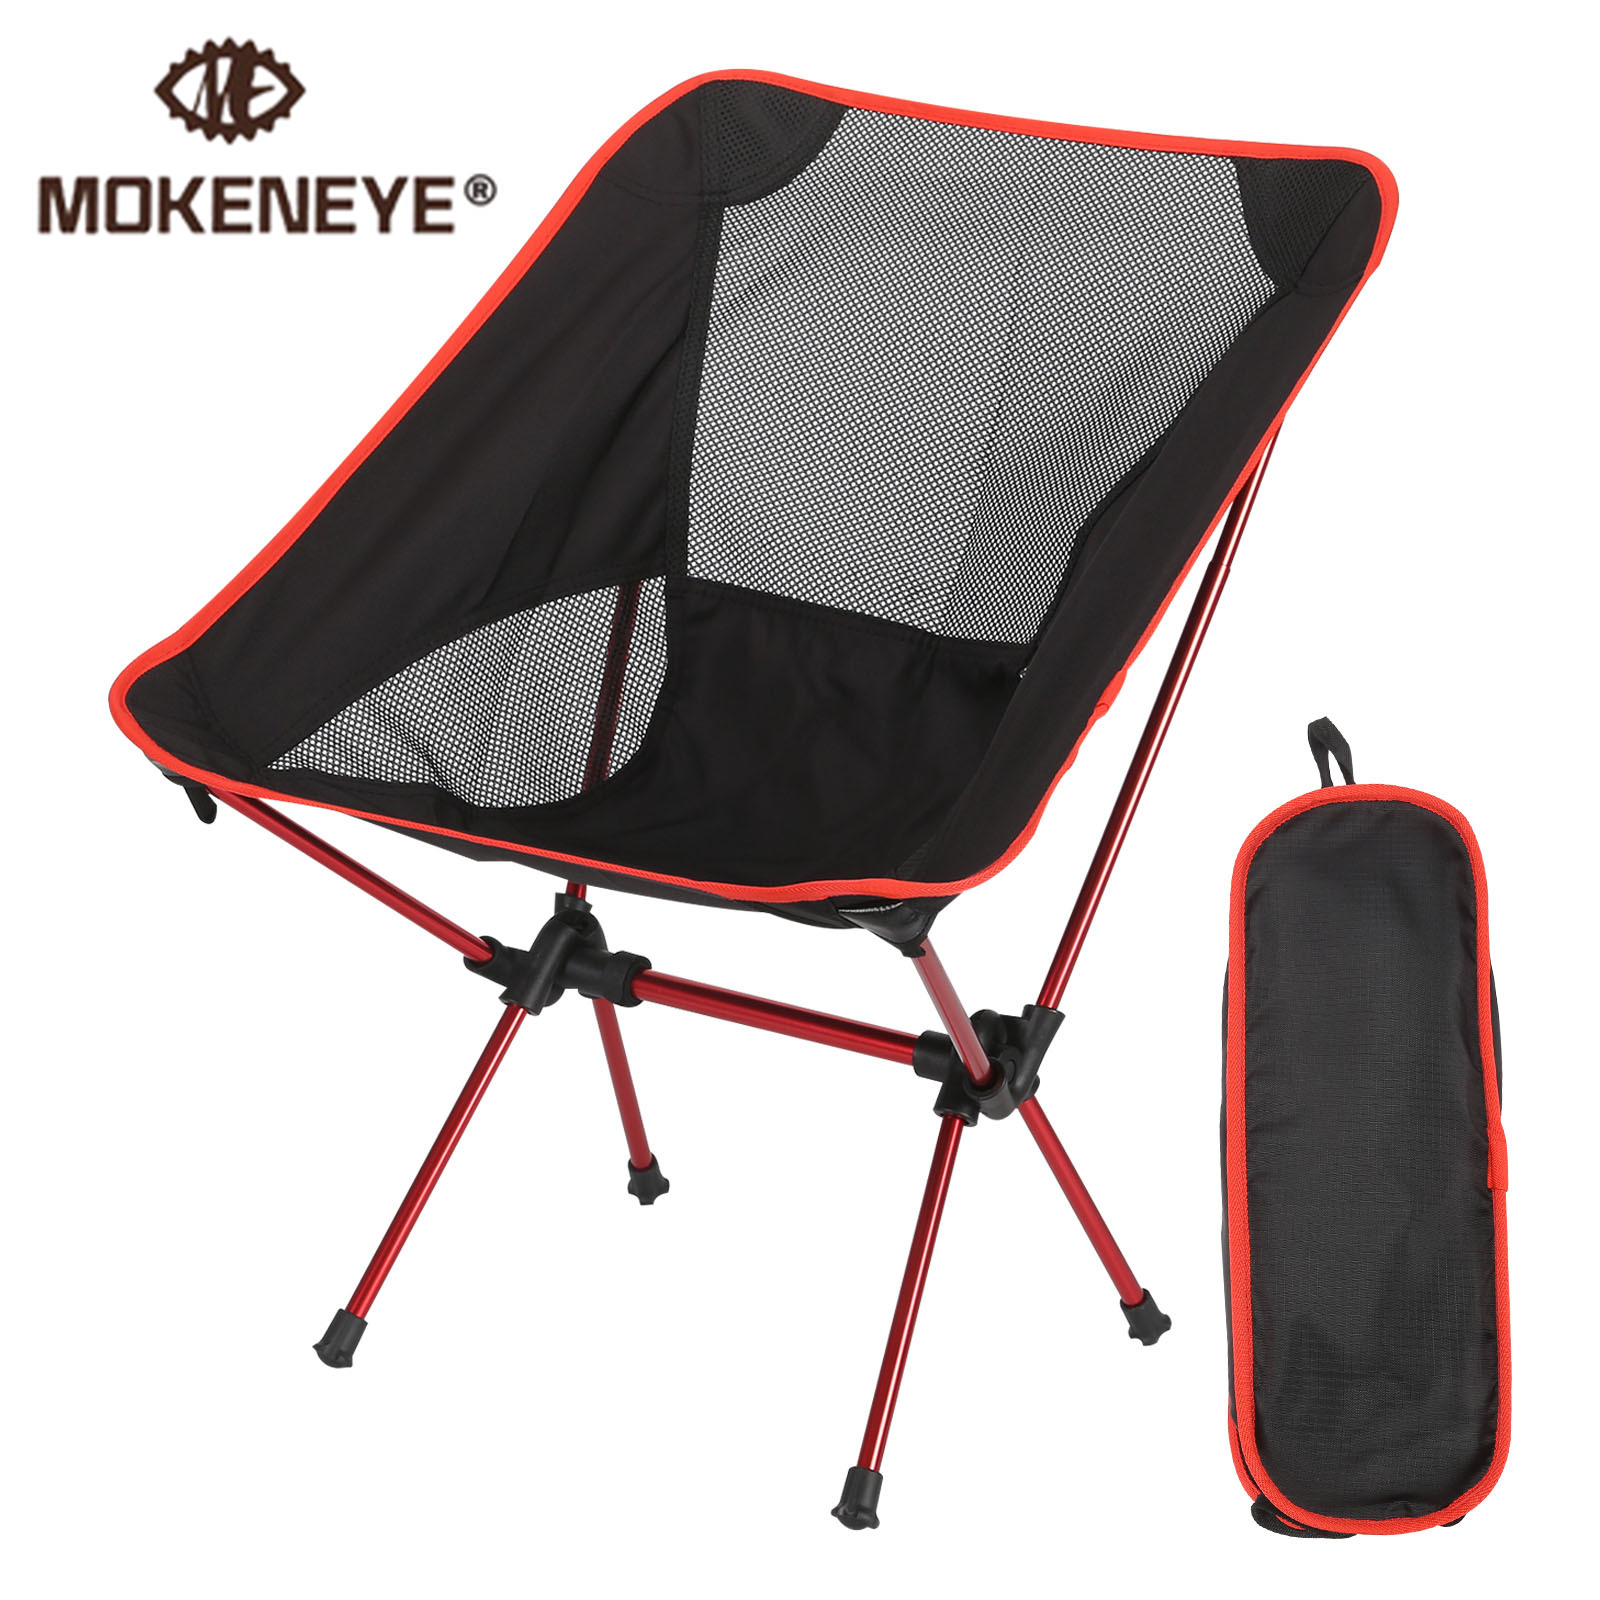 Ultralight Detachable Portable Moon Chair Lightweight Chair Folding Extended Seat Office Home Fishing Camping BBQ Garden Hiking